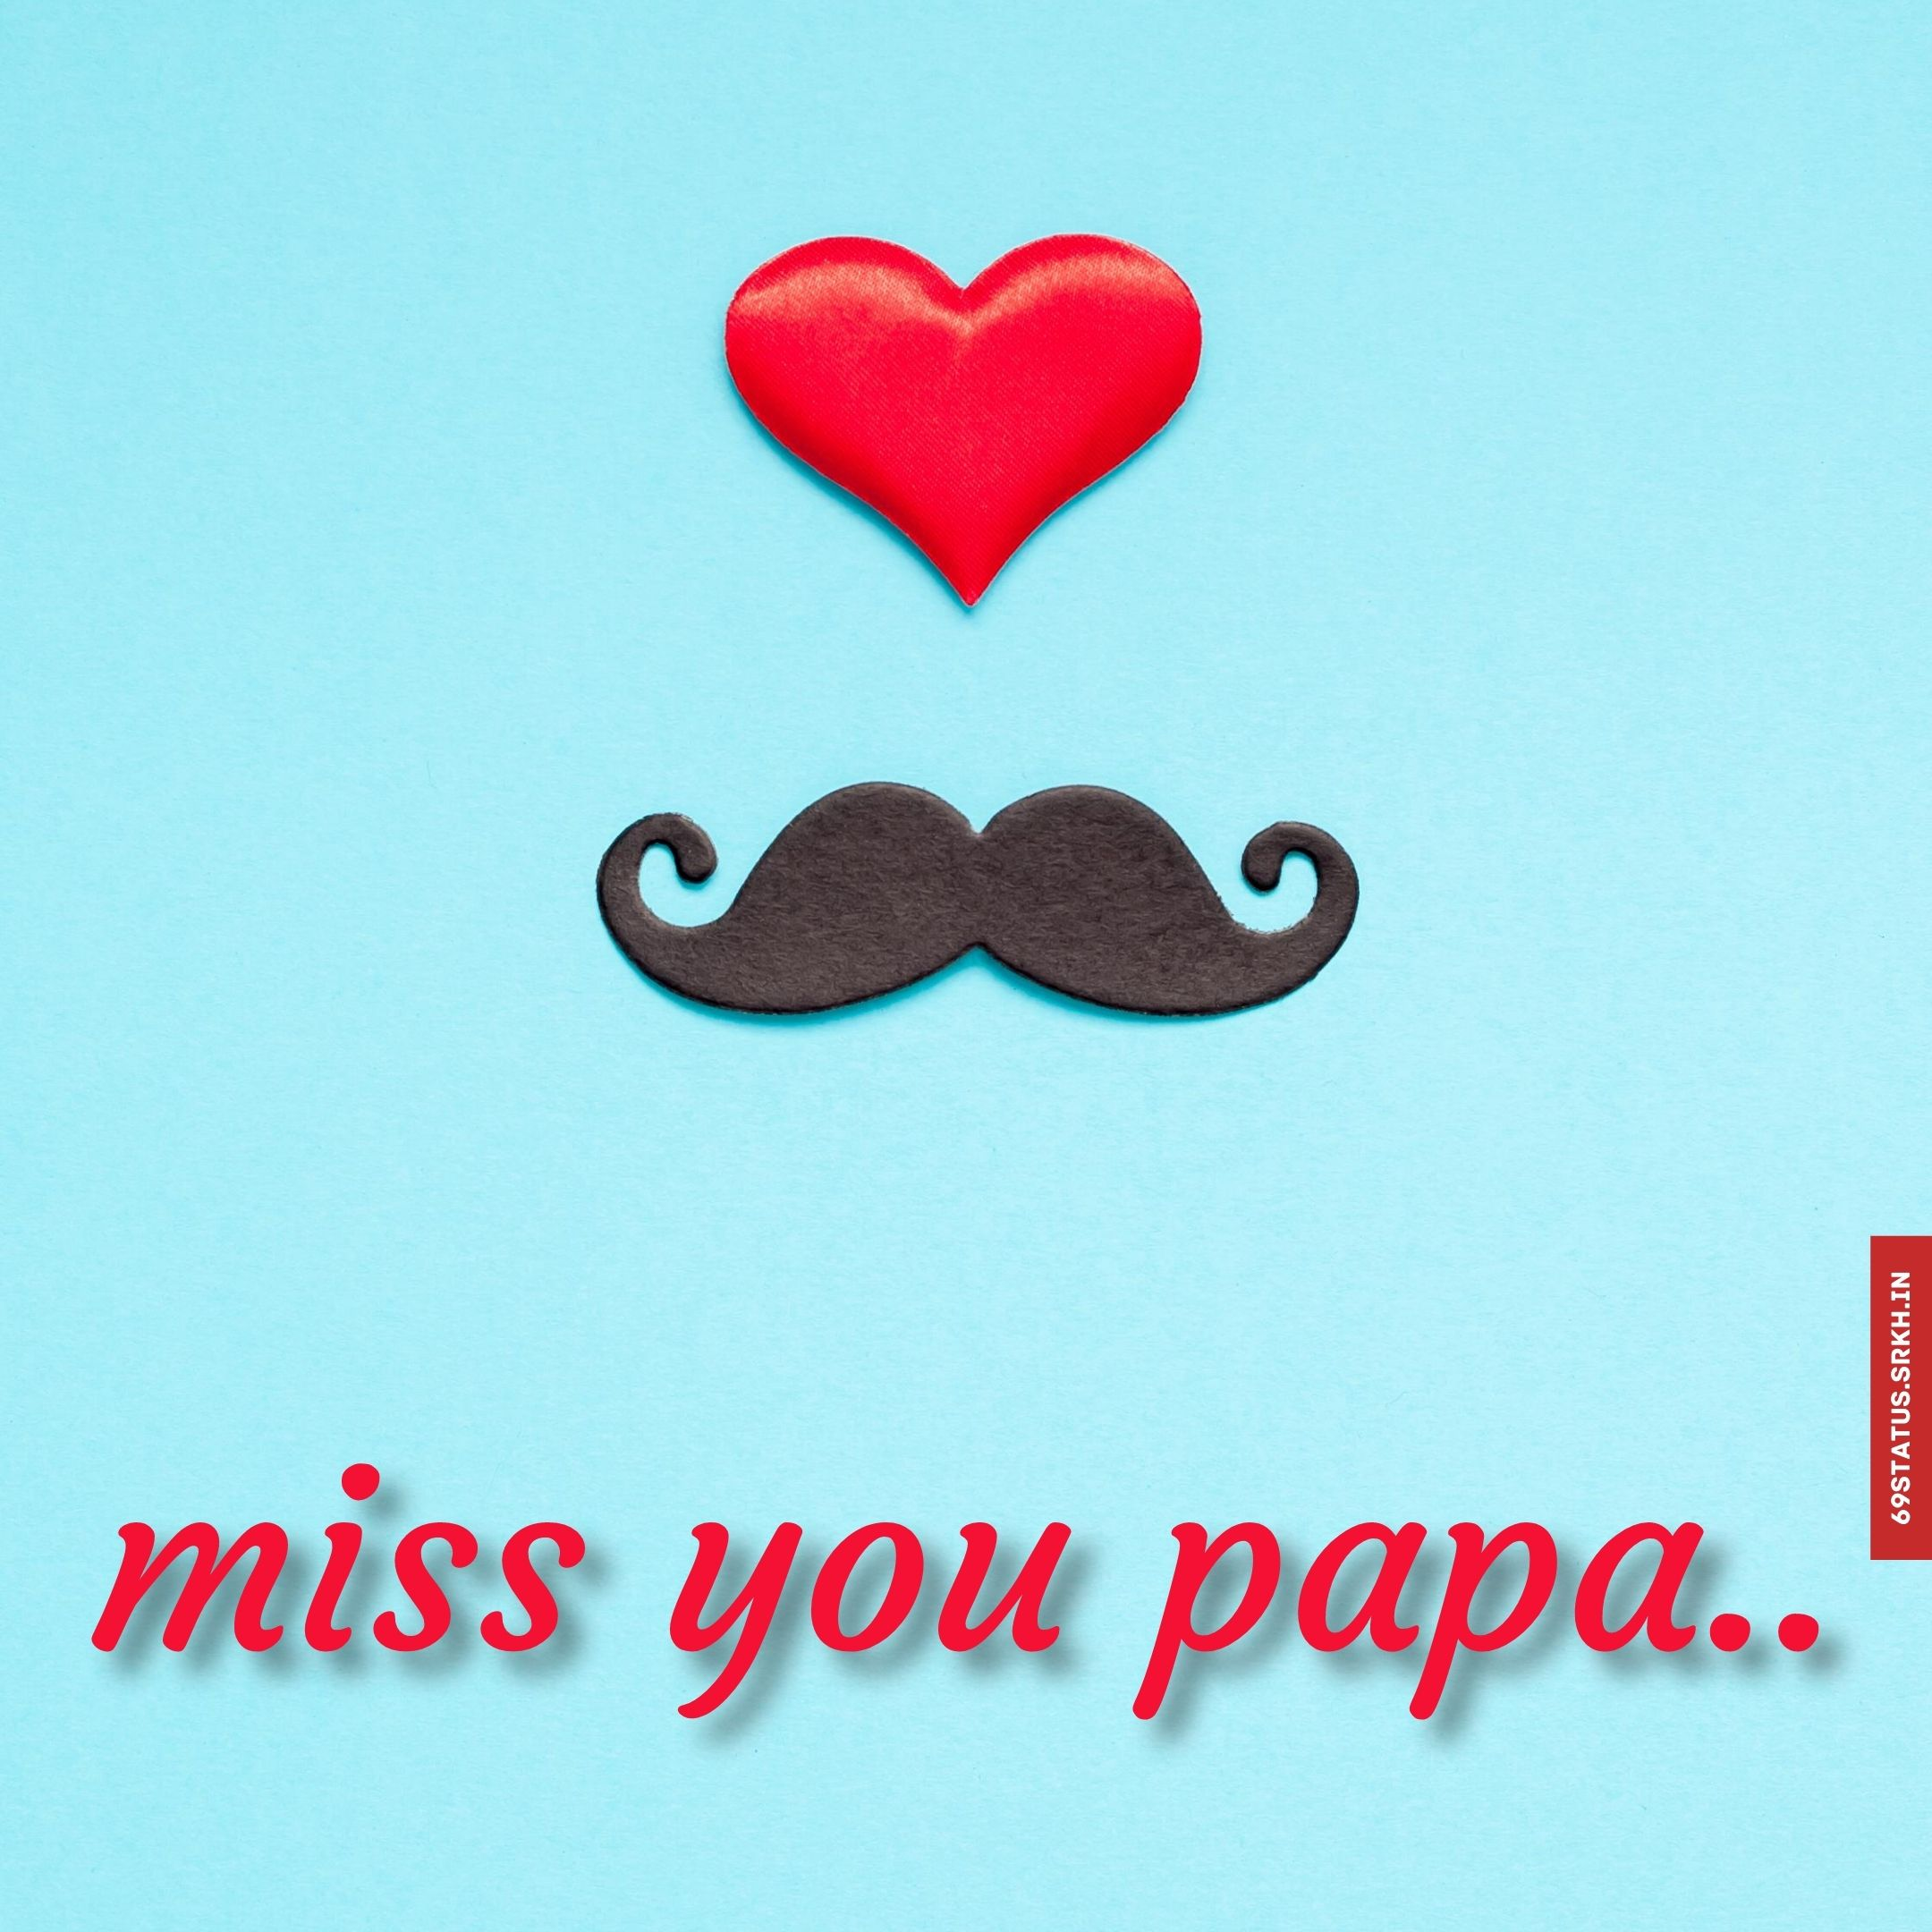 Miss you papa images full HD free download.